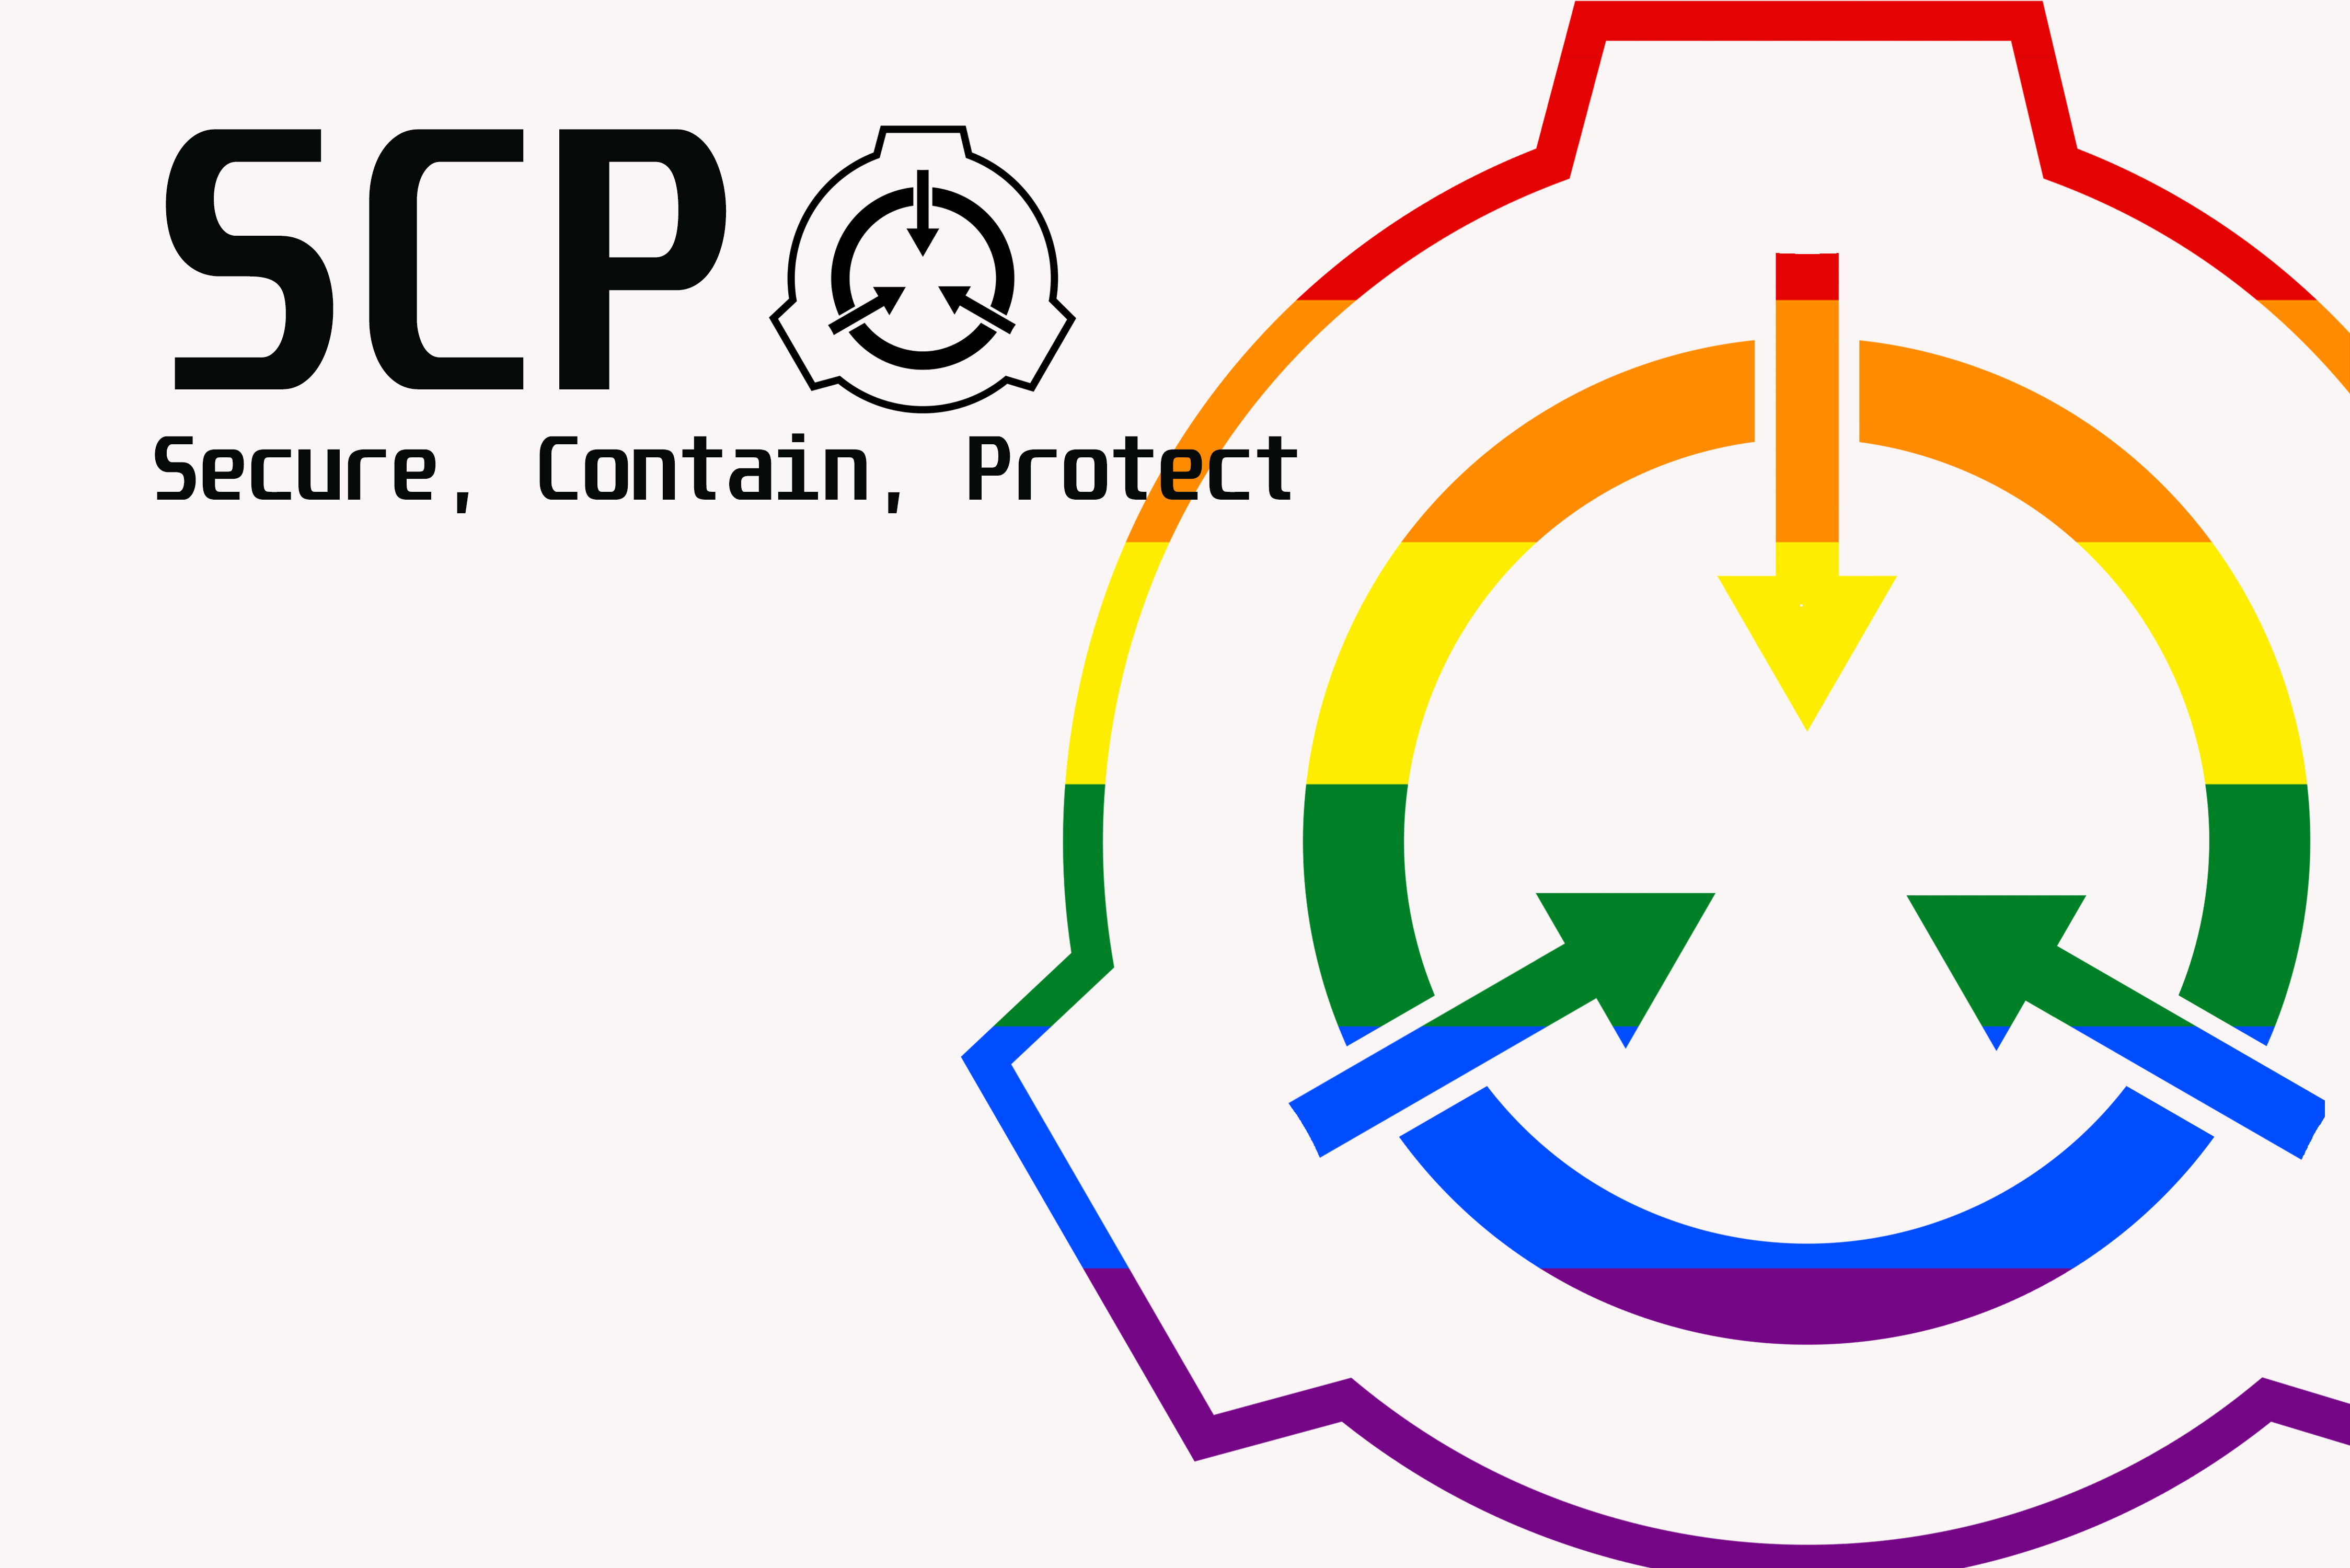 SCP-Ccard-Rainbow-05.png